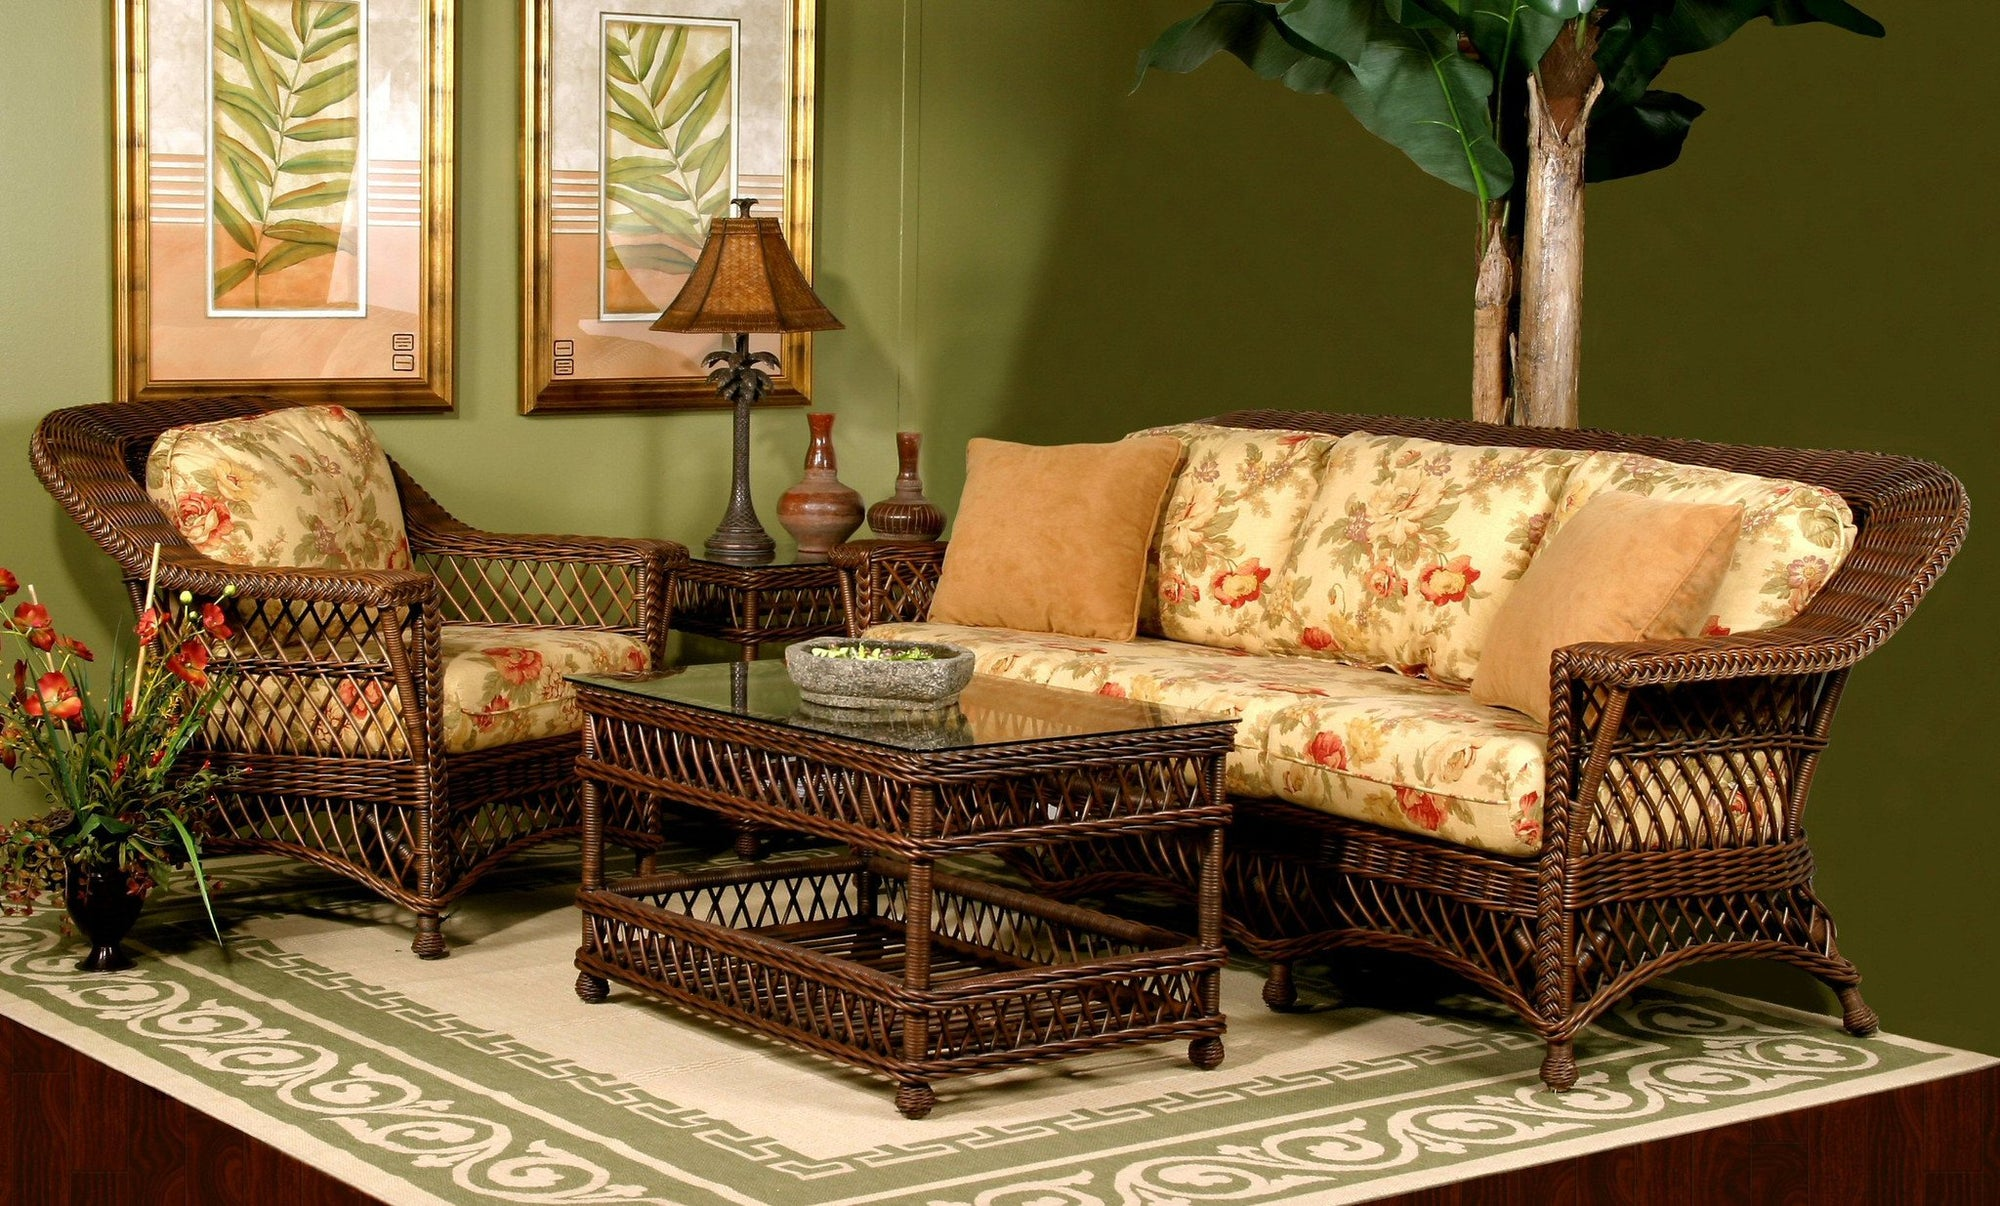 Spice Islands Spice Islands Bar Harbor Sofa Brownwash Sofa - Rattan Imports